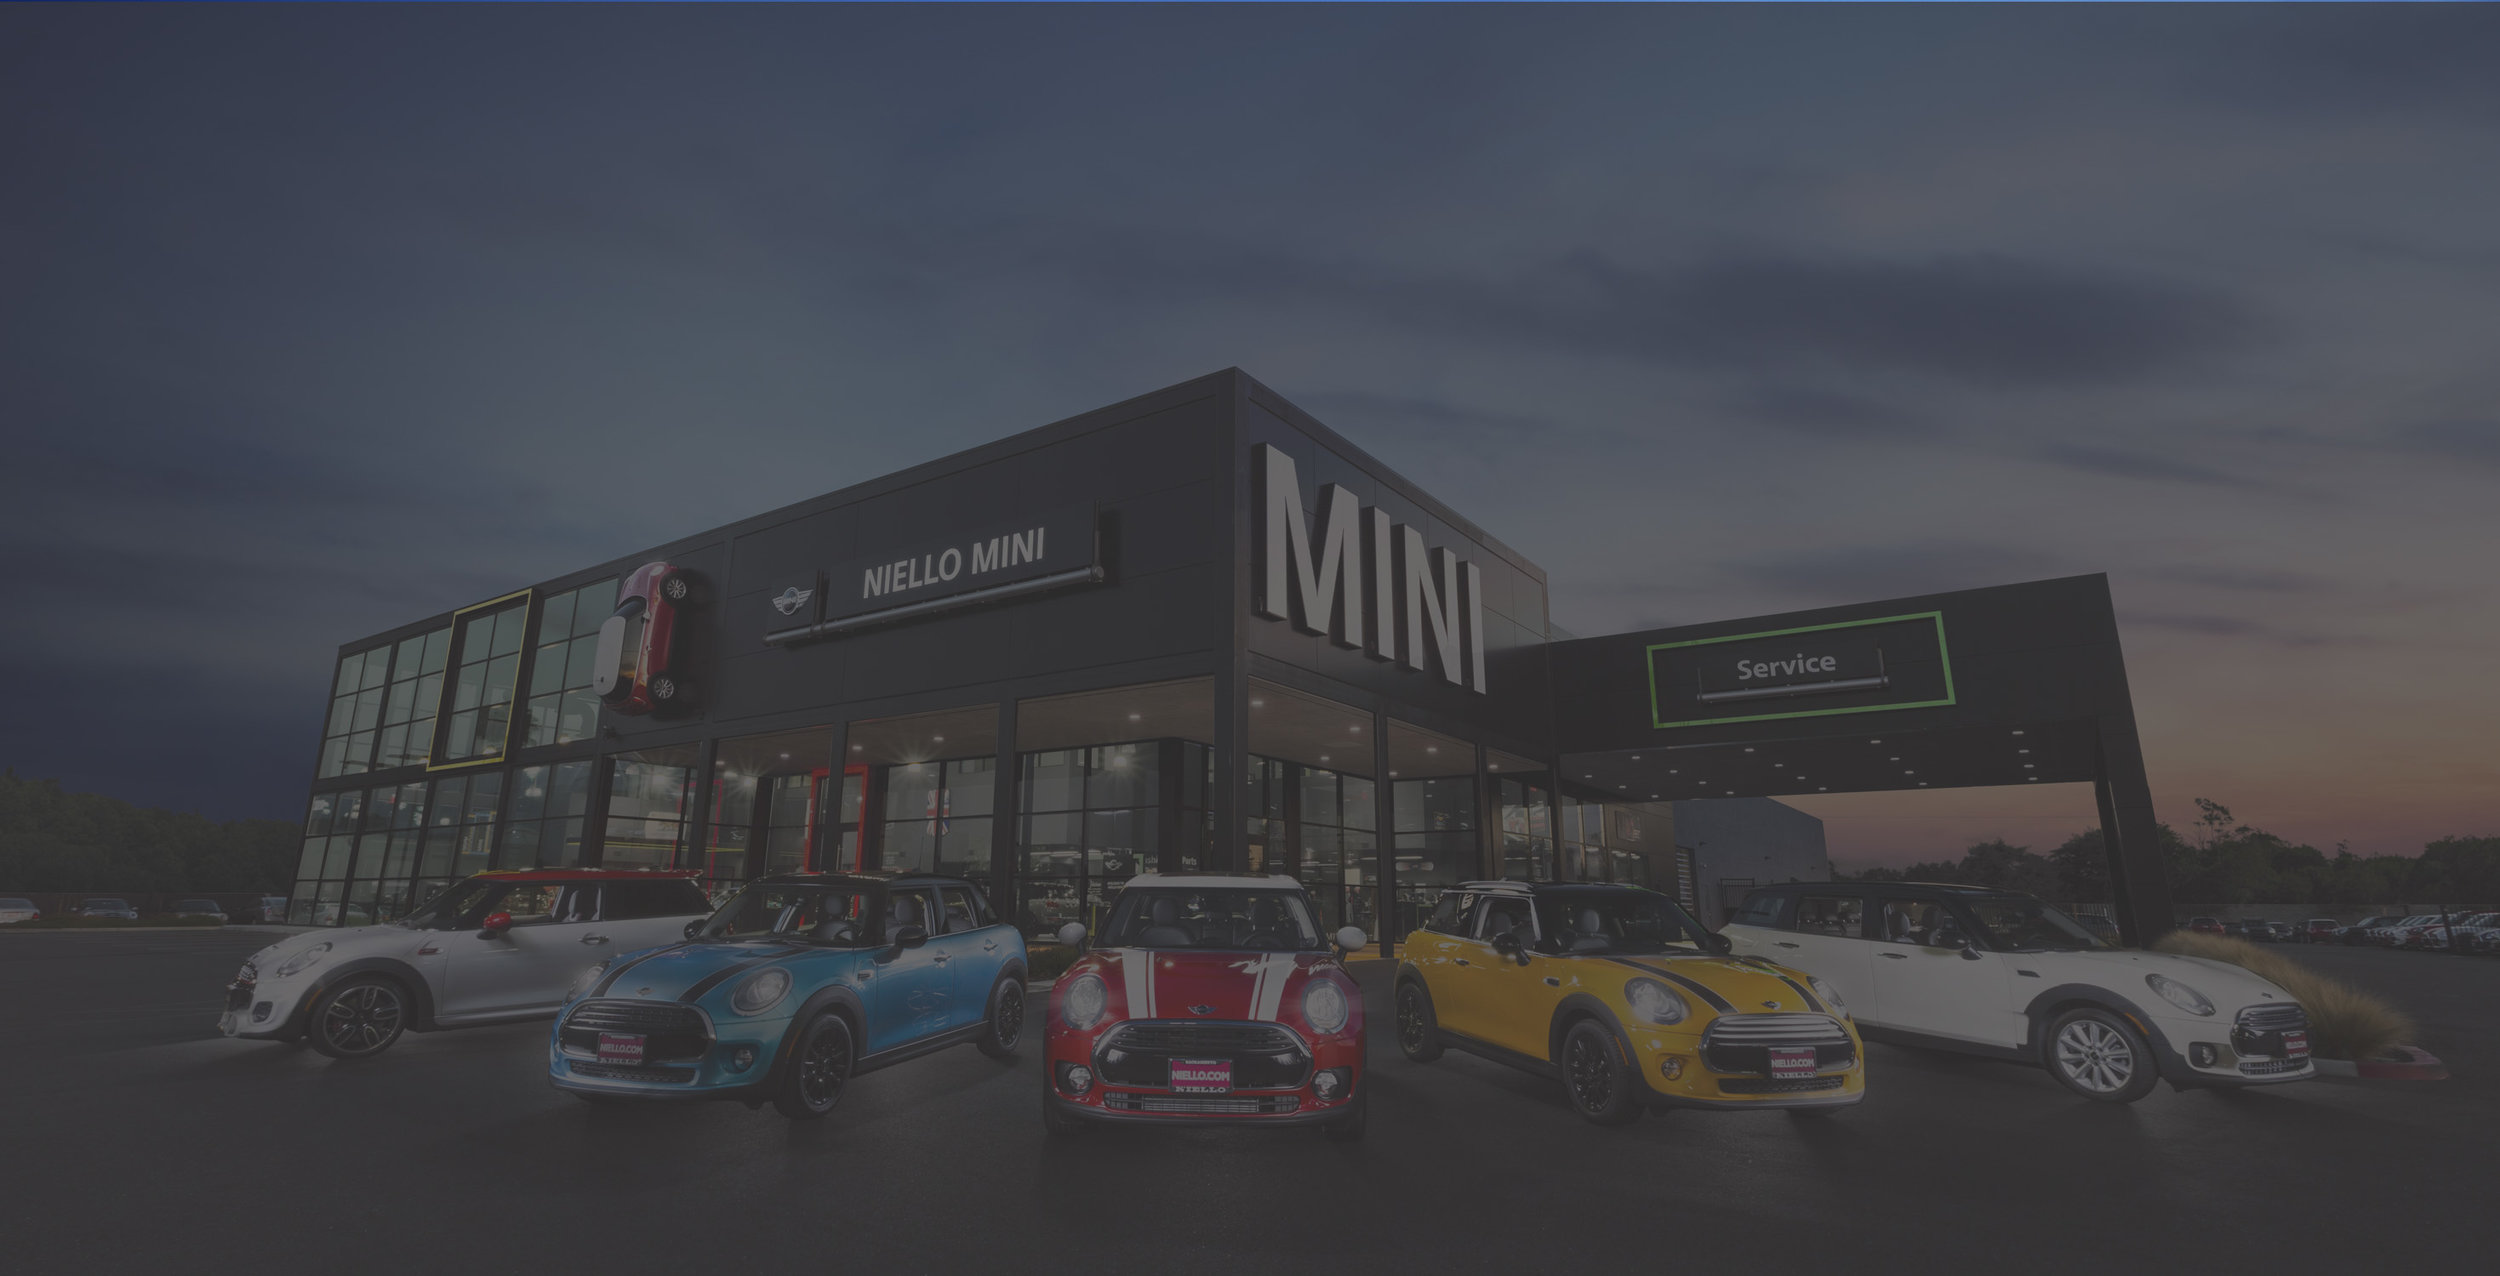 Since its creation in 1959, the MINI brand has always stood for ideas, inspiration and passion. A new MINI facility in Sacramento , California reflects the combination of clear, emotionally-appealing design with a focus on the essential. With a total building area of 33, 862 sq. ft., the black metal and glass facade of the showroom and service drive and supergraphic MINI signage create an unmistakable image. The service area contains 19 service bays and a Clinker tile floor.